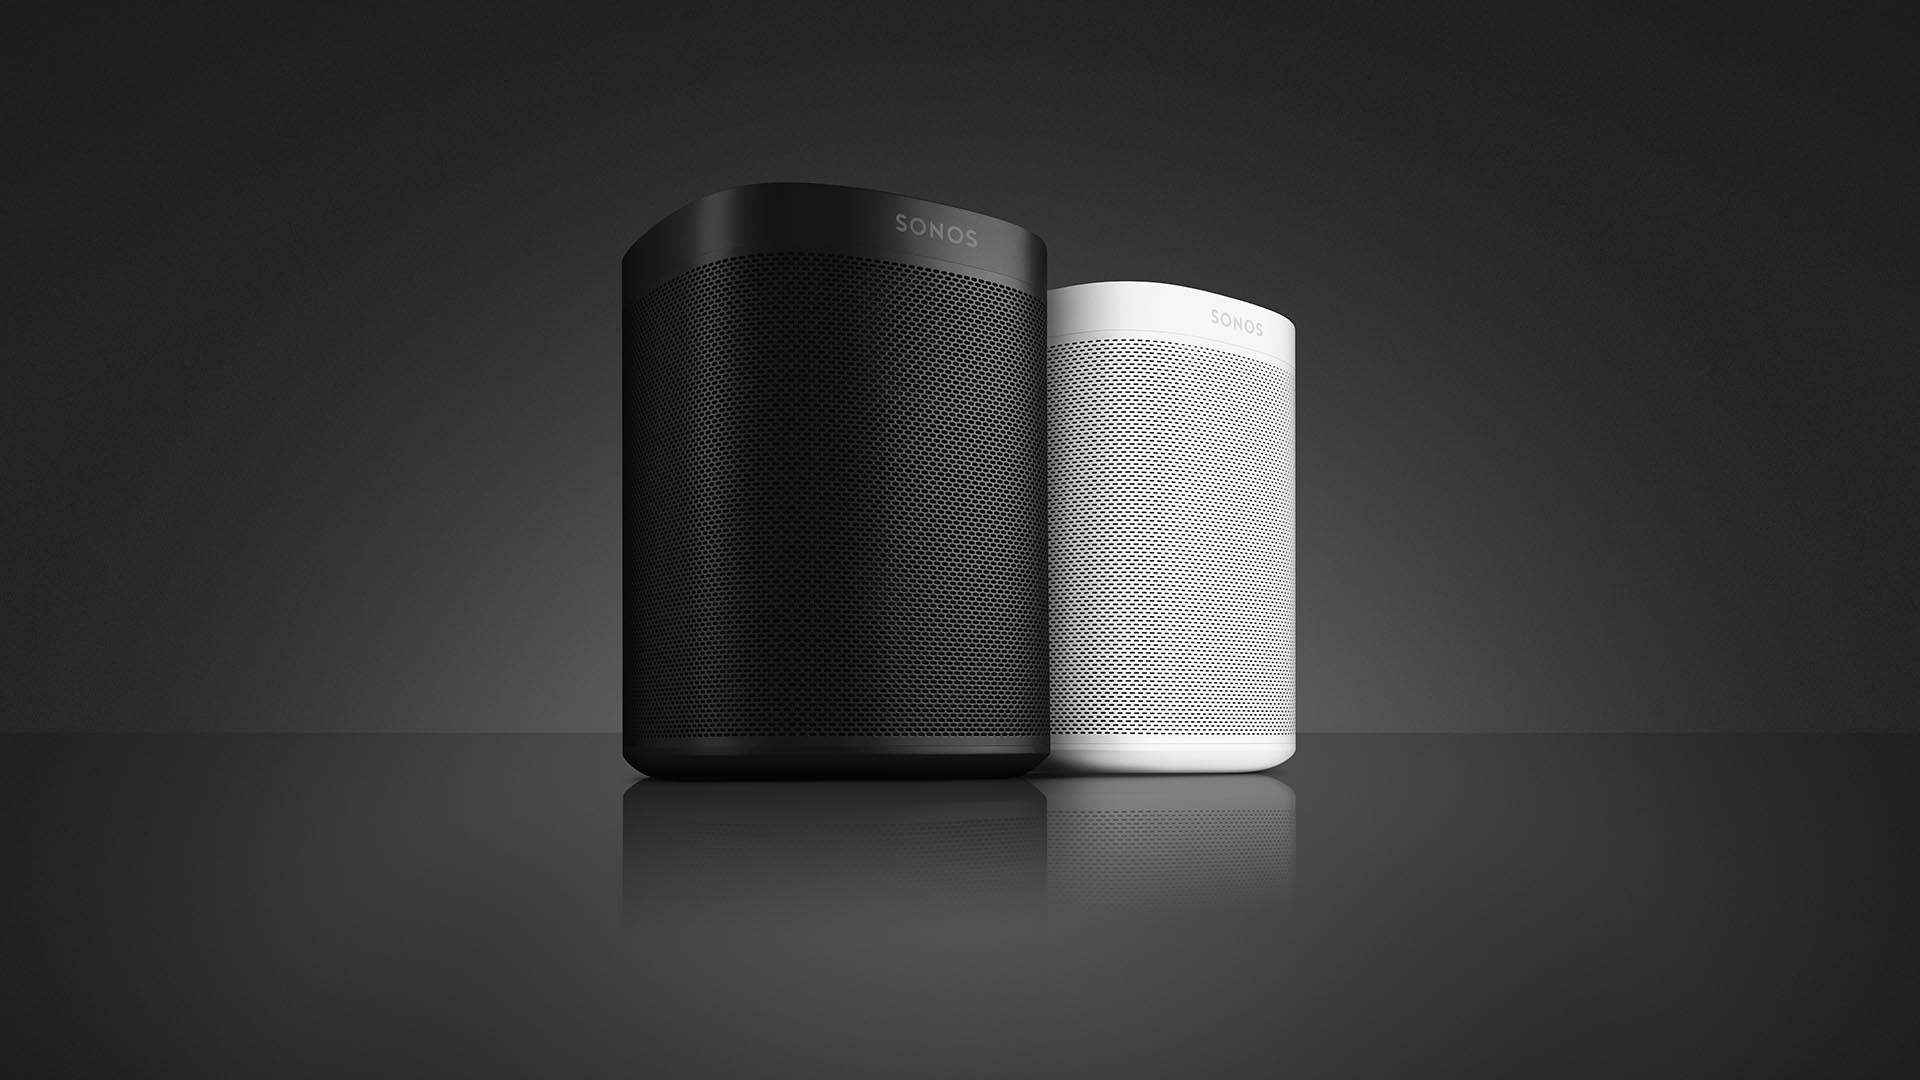 Sonos Hero Speakers Black & White